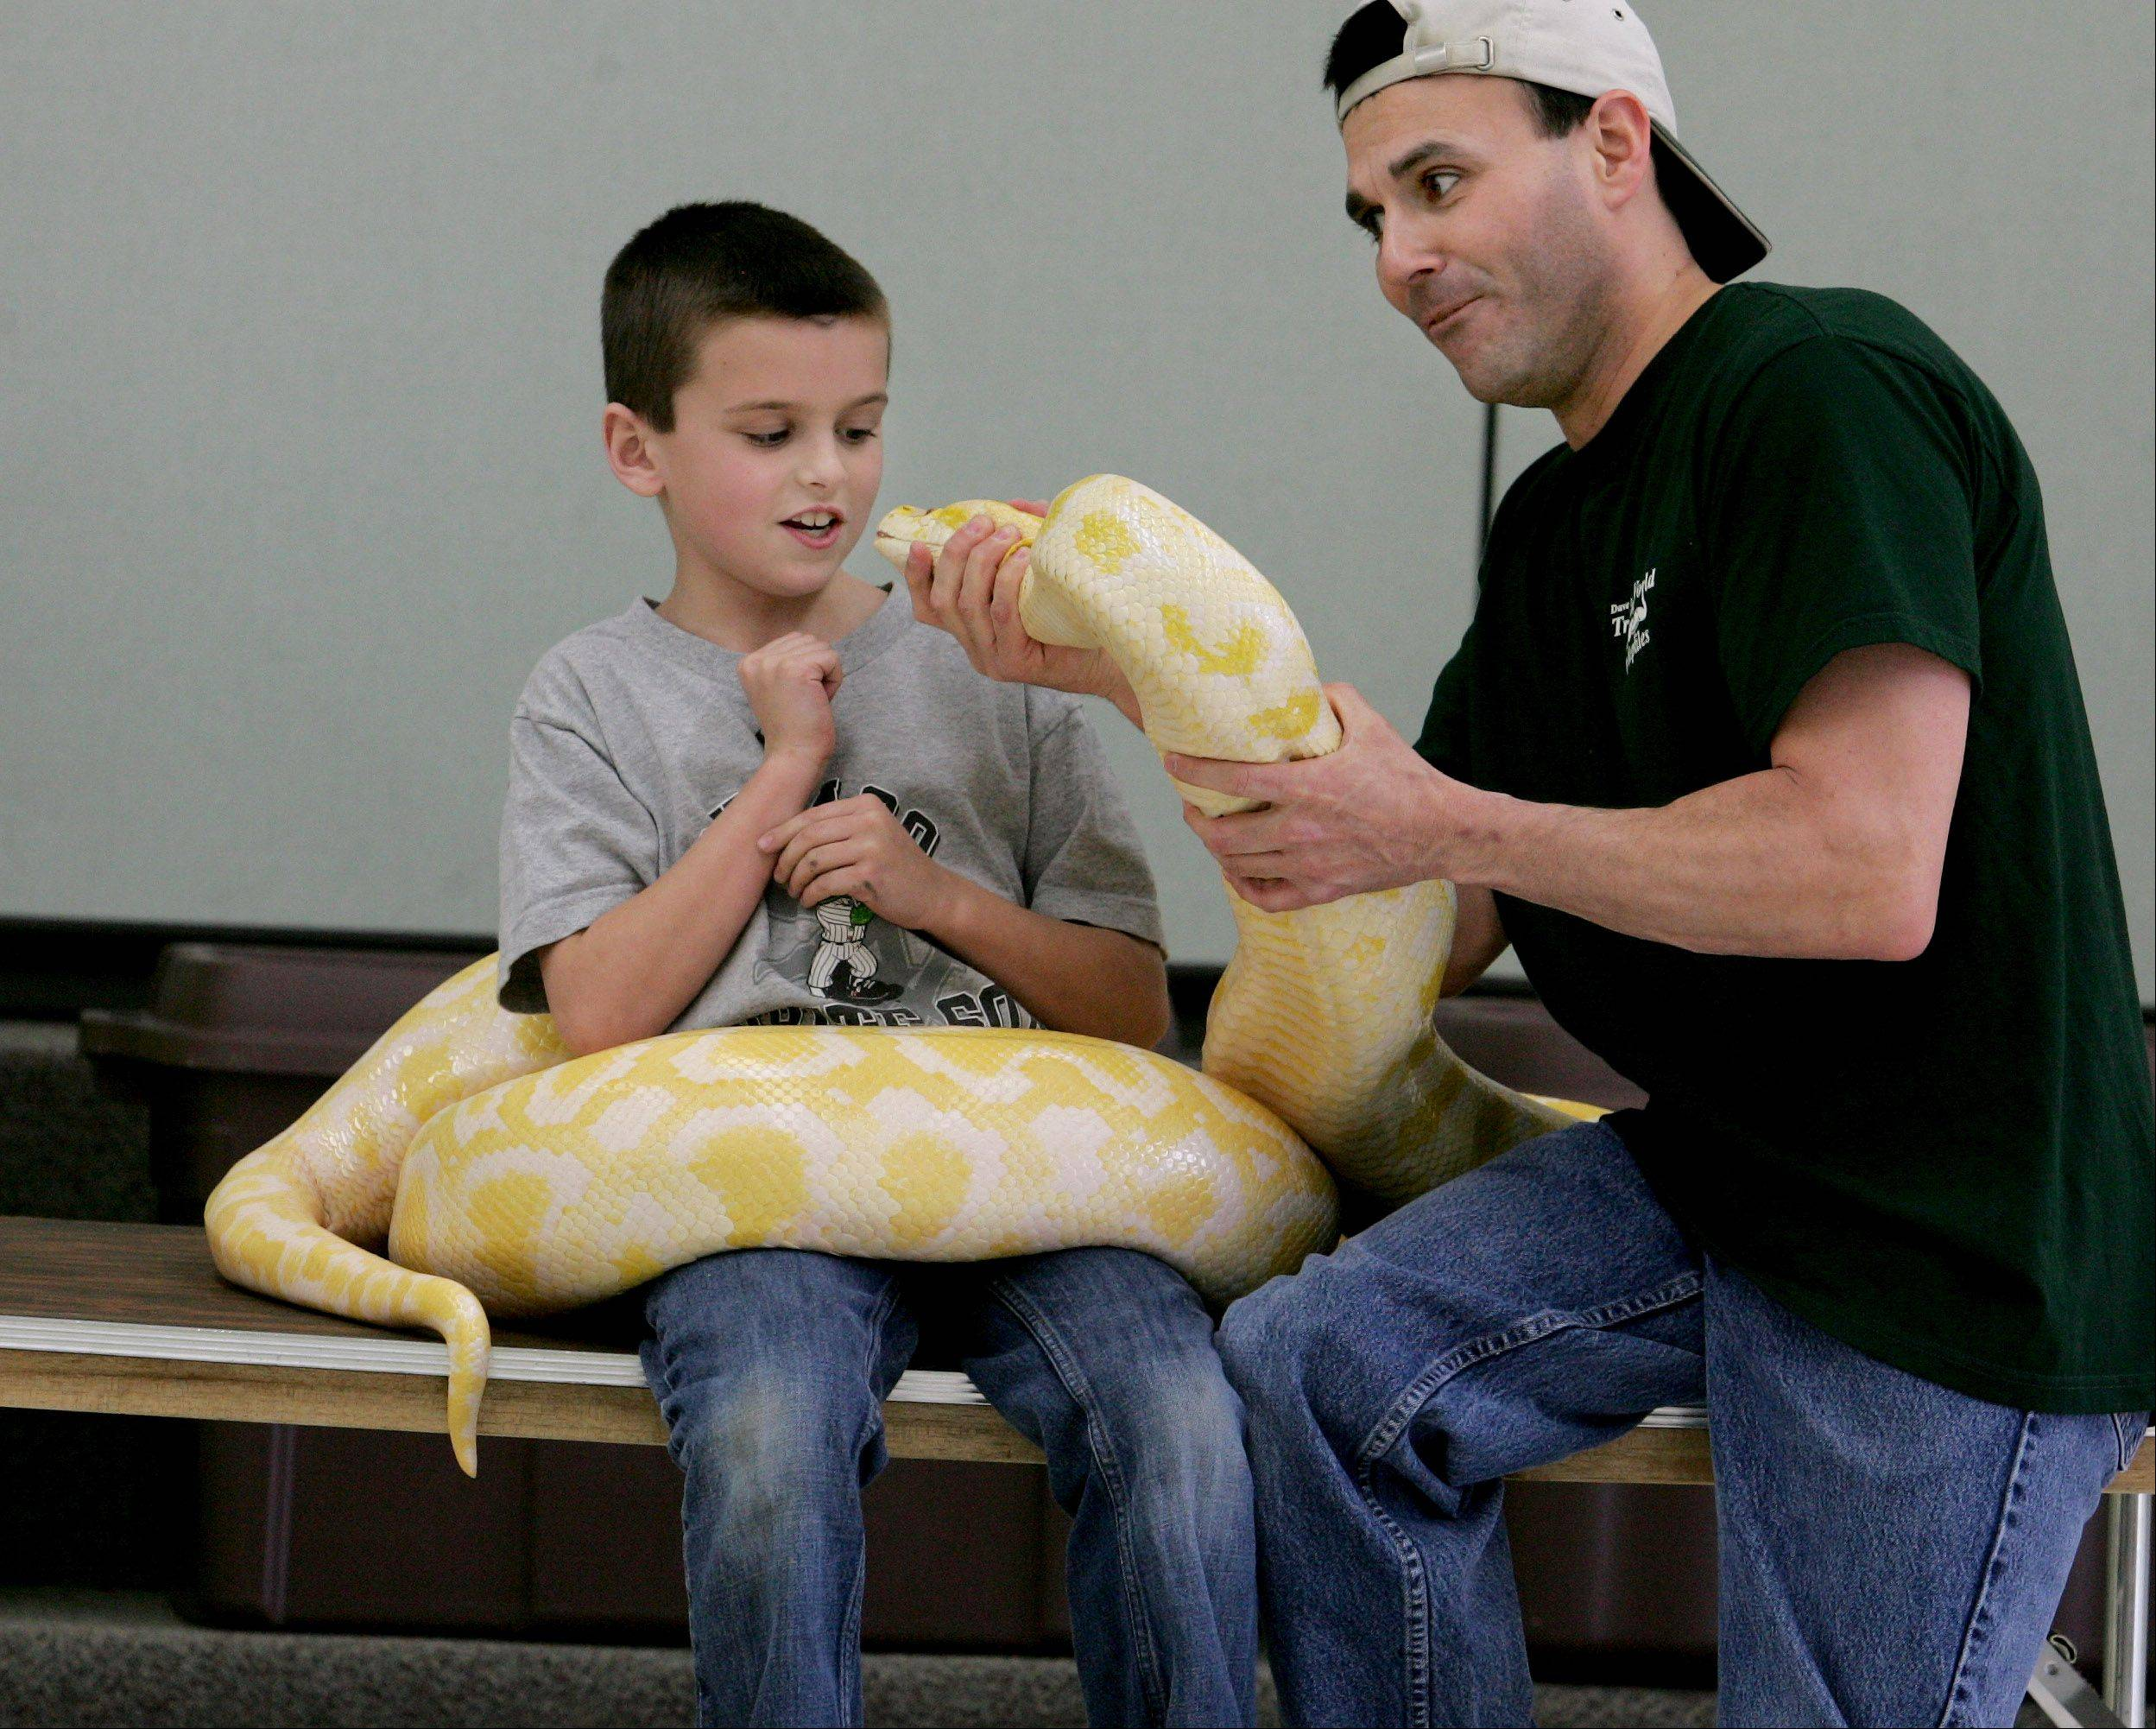 Dave DiNaso, helping an audience member get a good look at a Burmese python, brings his Traveling World of Reptiles to Lisle's Eyes to the Skies on Thursday as part of a lineup of animal shows in the children's area.